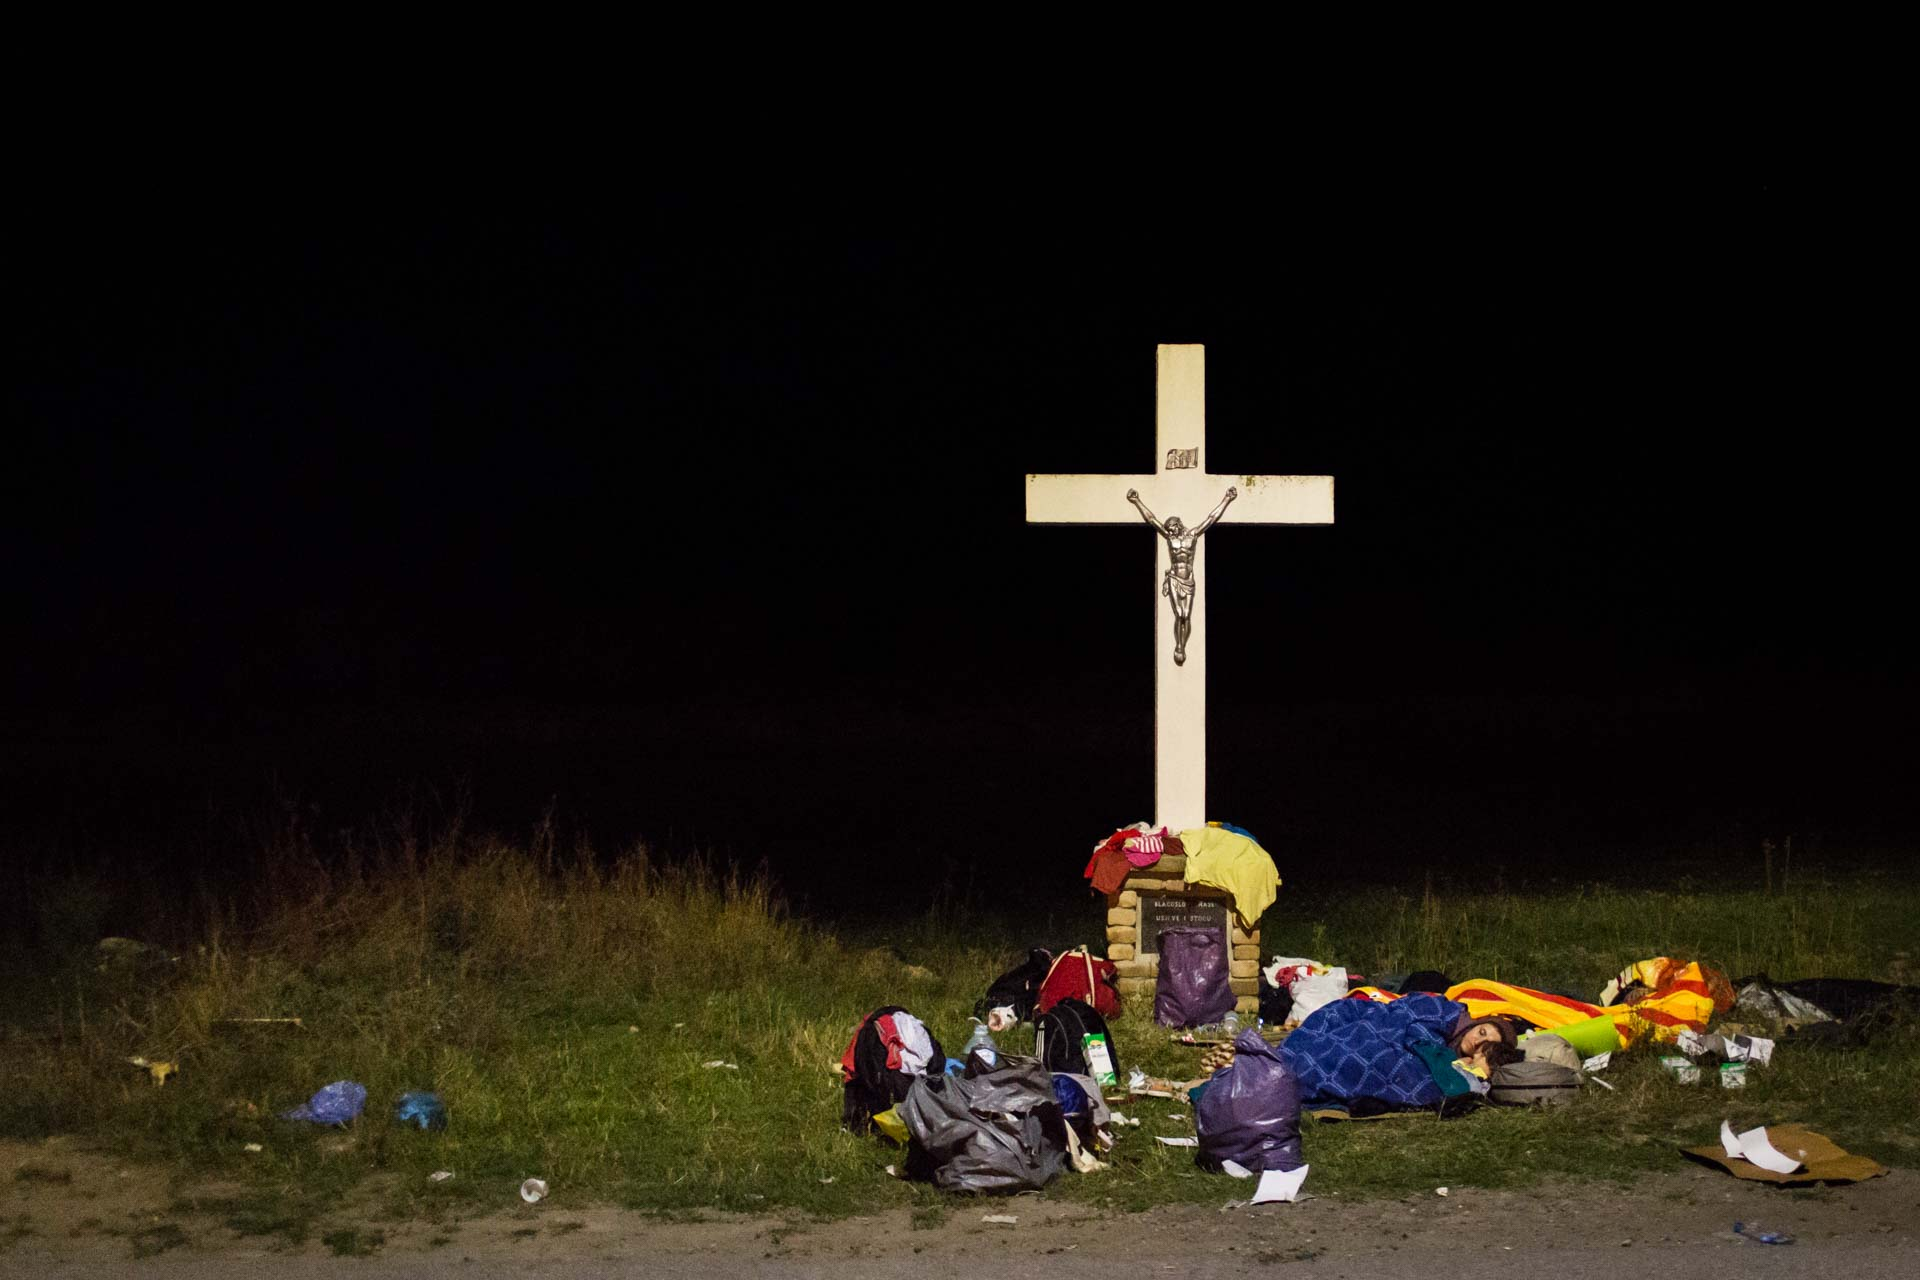 A Syrian family set up temporary camp next to a big cross near the railway station in Tovarnik, the first village in Croatia after they crossed from Serbia.